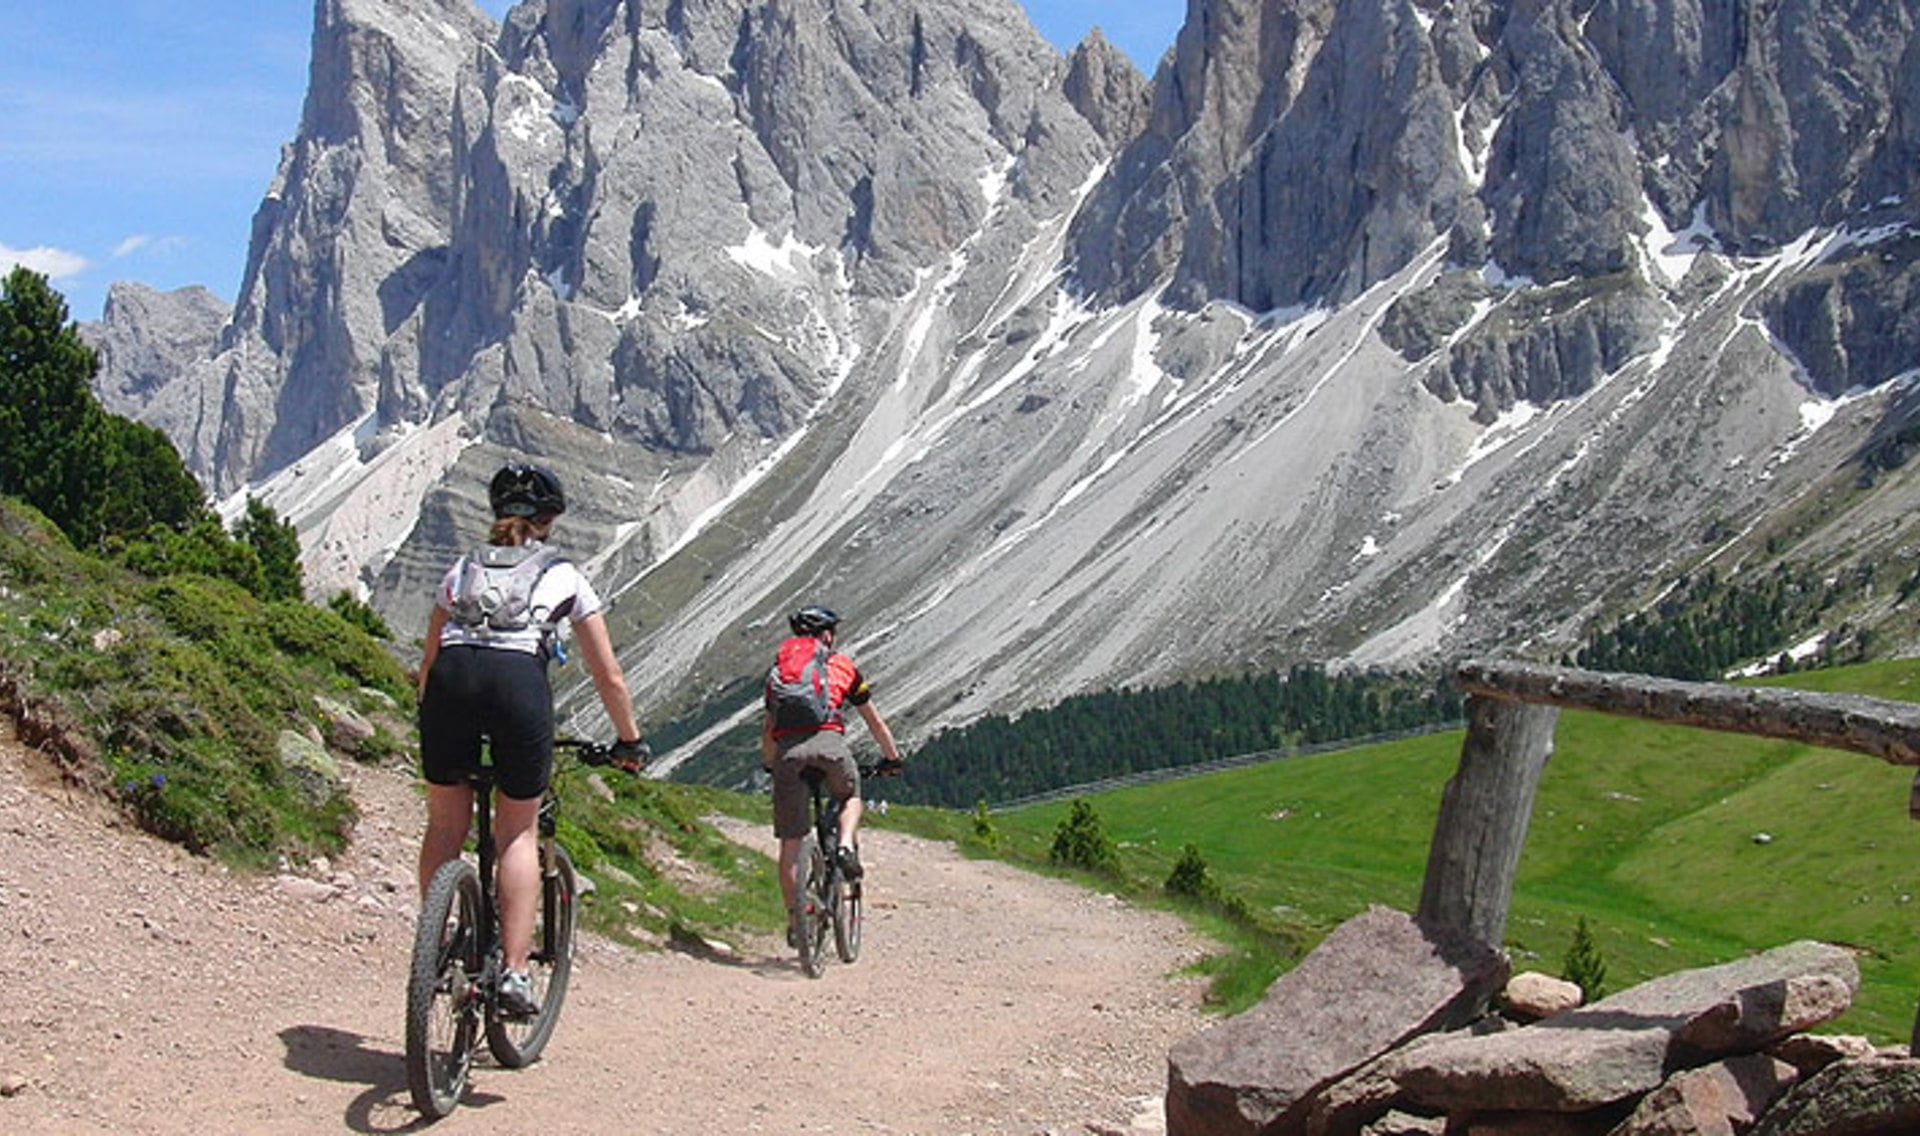 Resciesa and Brogles Alp